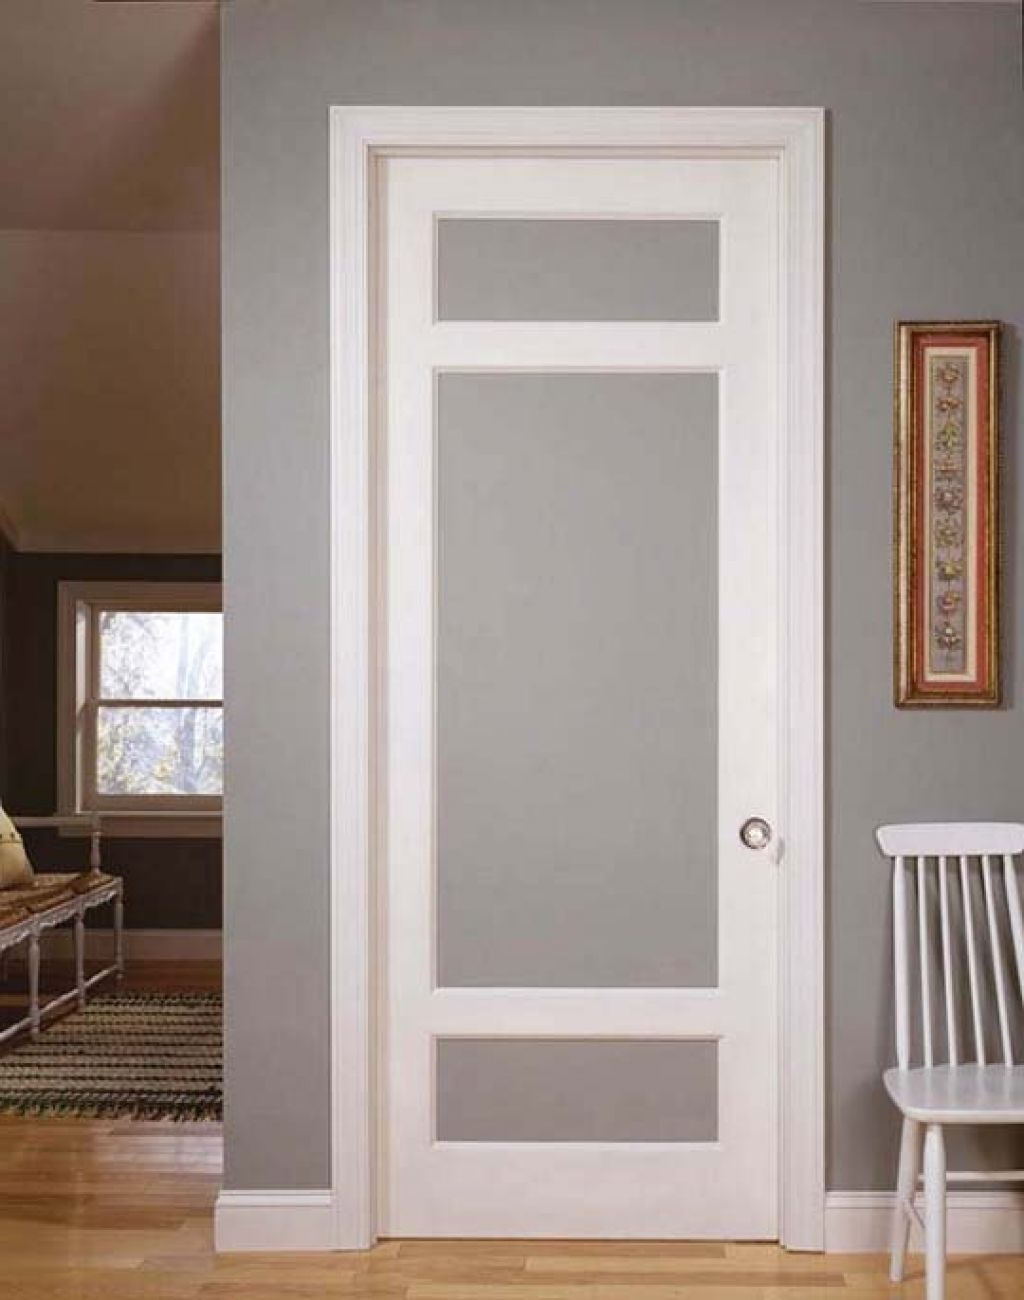 Le Meilleur Simple Vintage Styled Interior Doors With Frosted Glass Ce Mois Ci